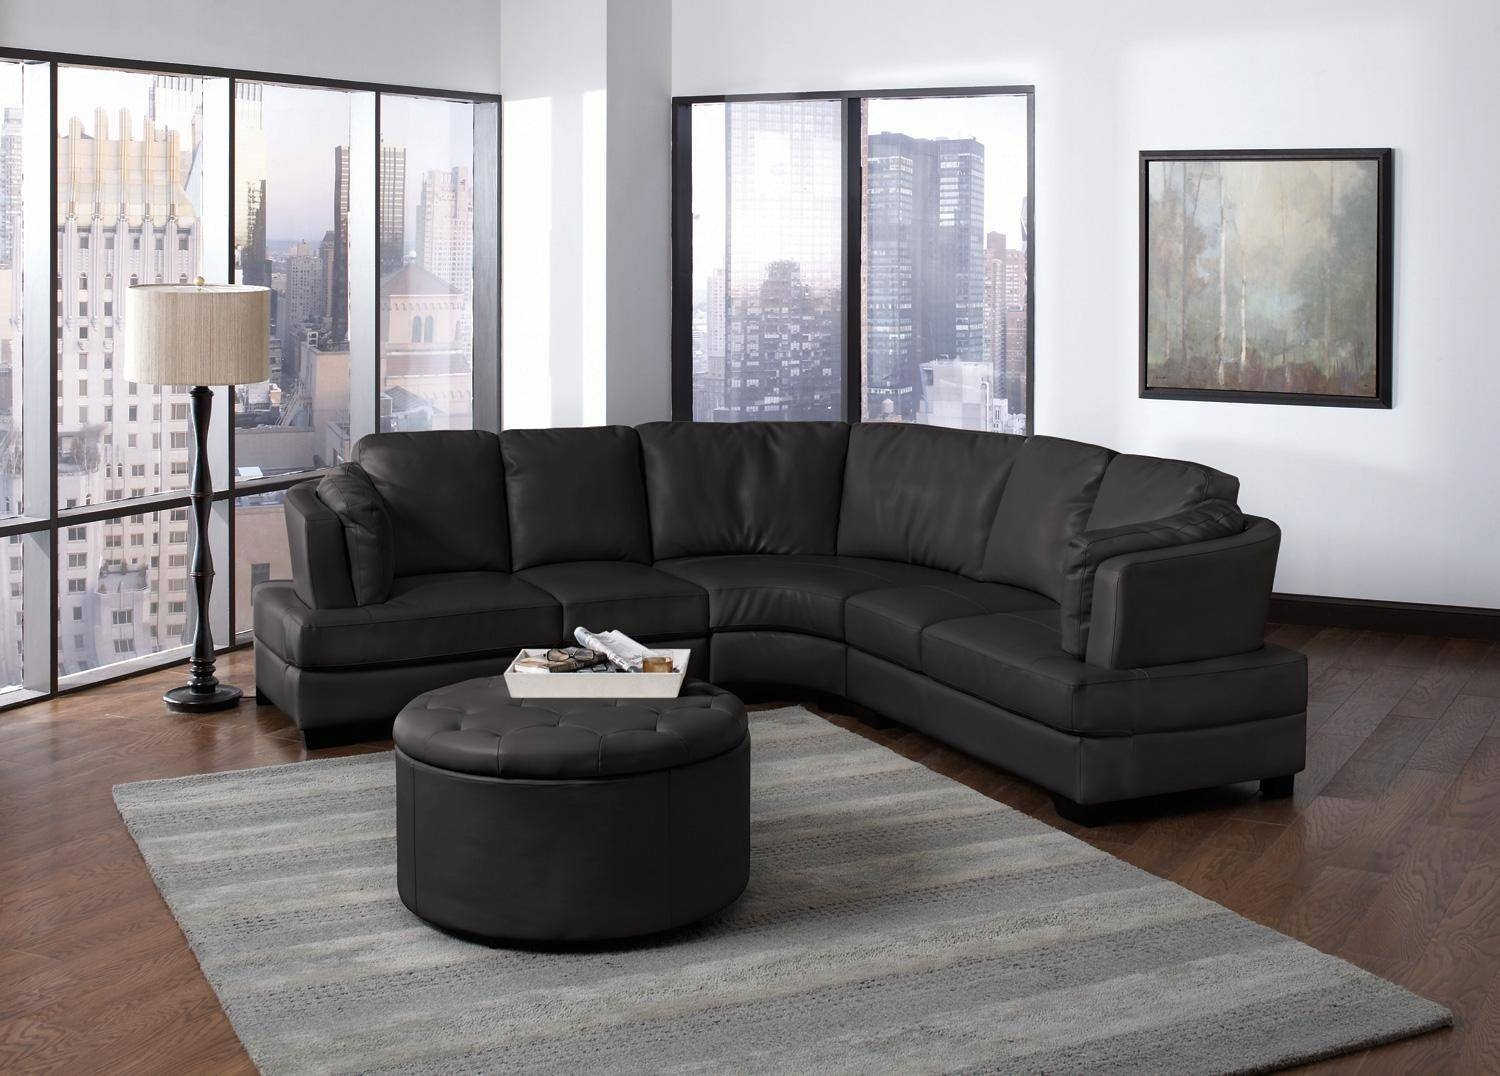 Furniture: Curved Sectional Sofa | Curved Sofa | Semi Circular Couches inside Semi Circular Sectional Sofas (Image 7 of 15)